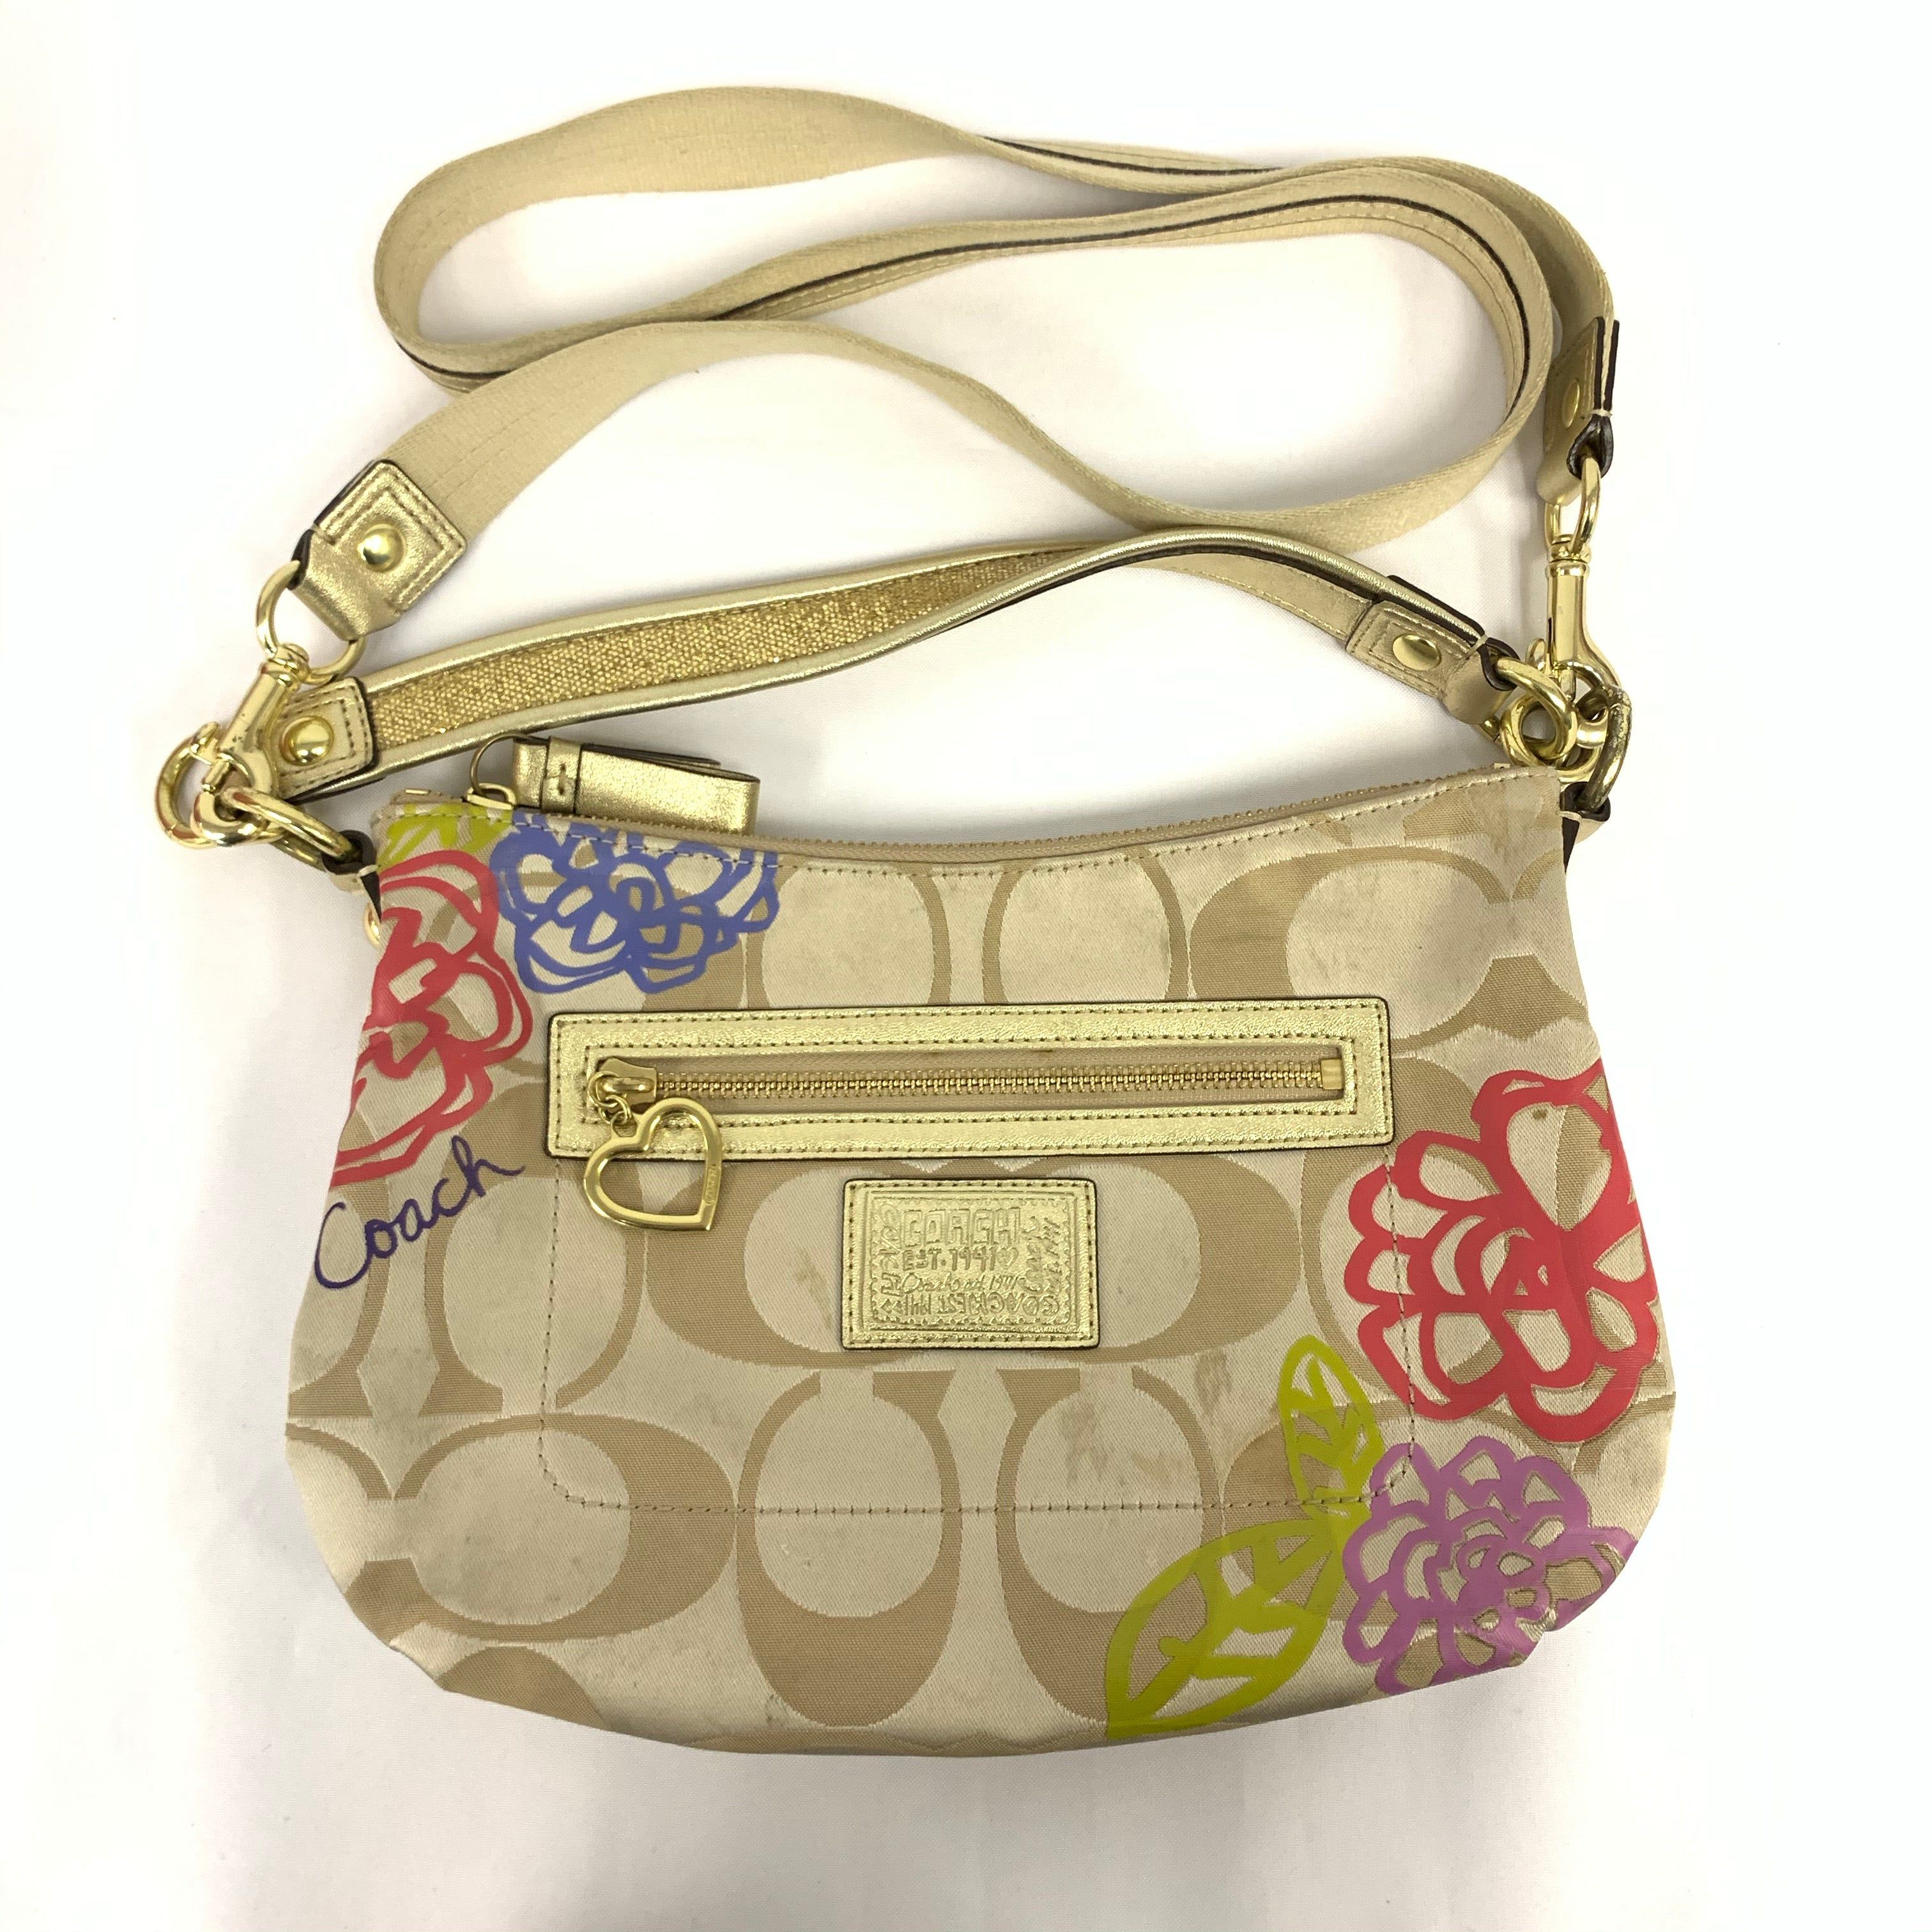 Crossbody Coach Fabric Bag with Flowery Pattern